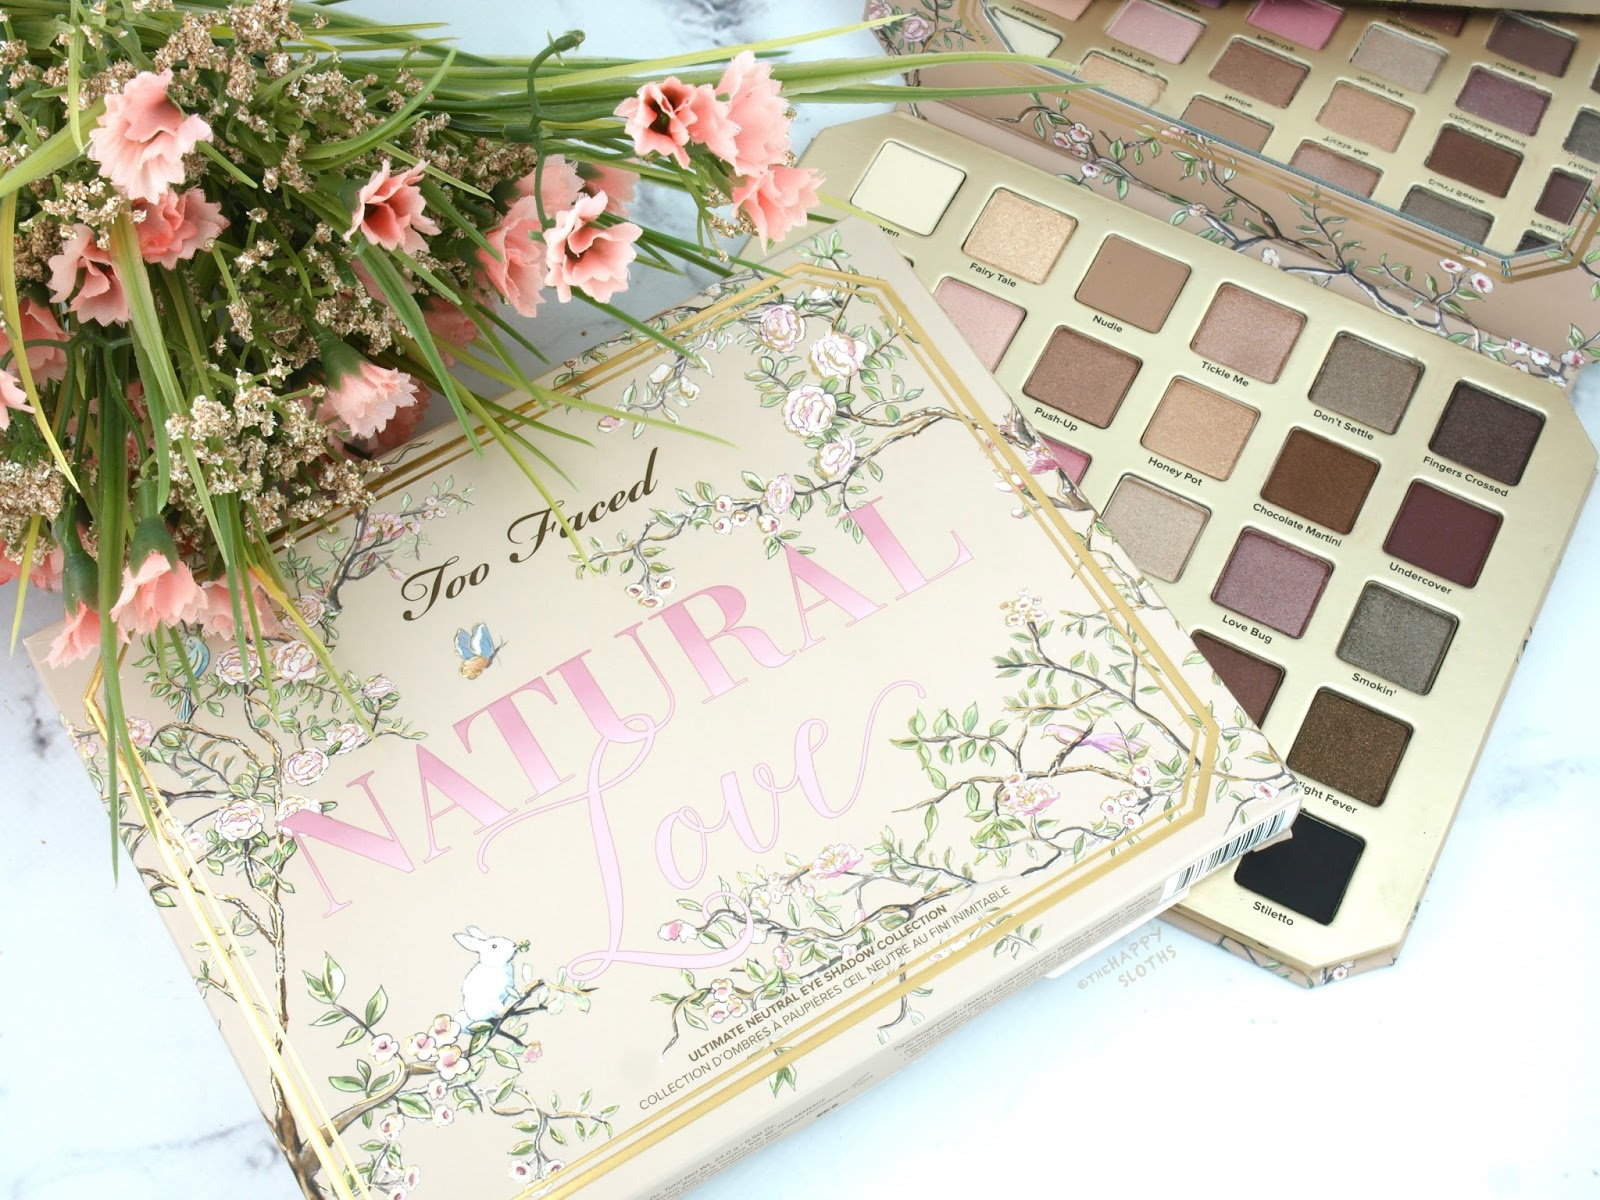 Too faced ultimate natural